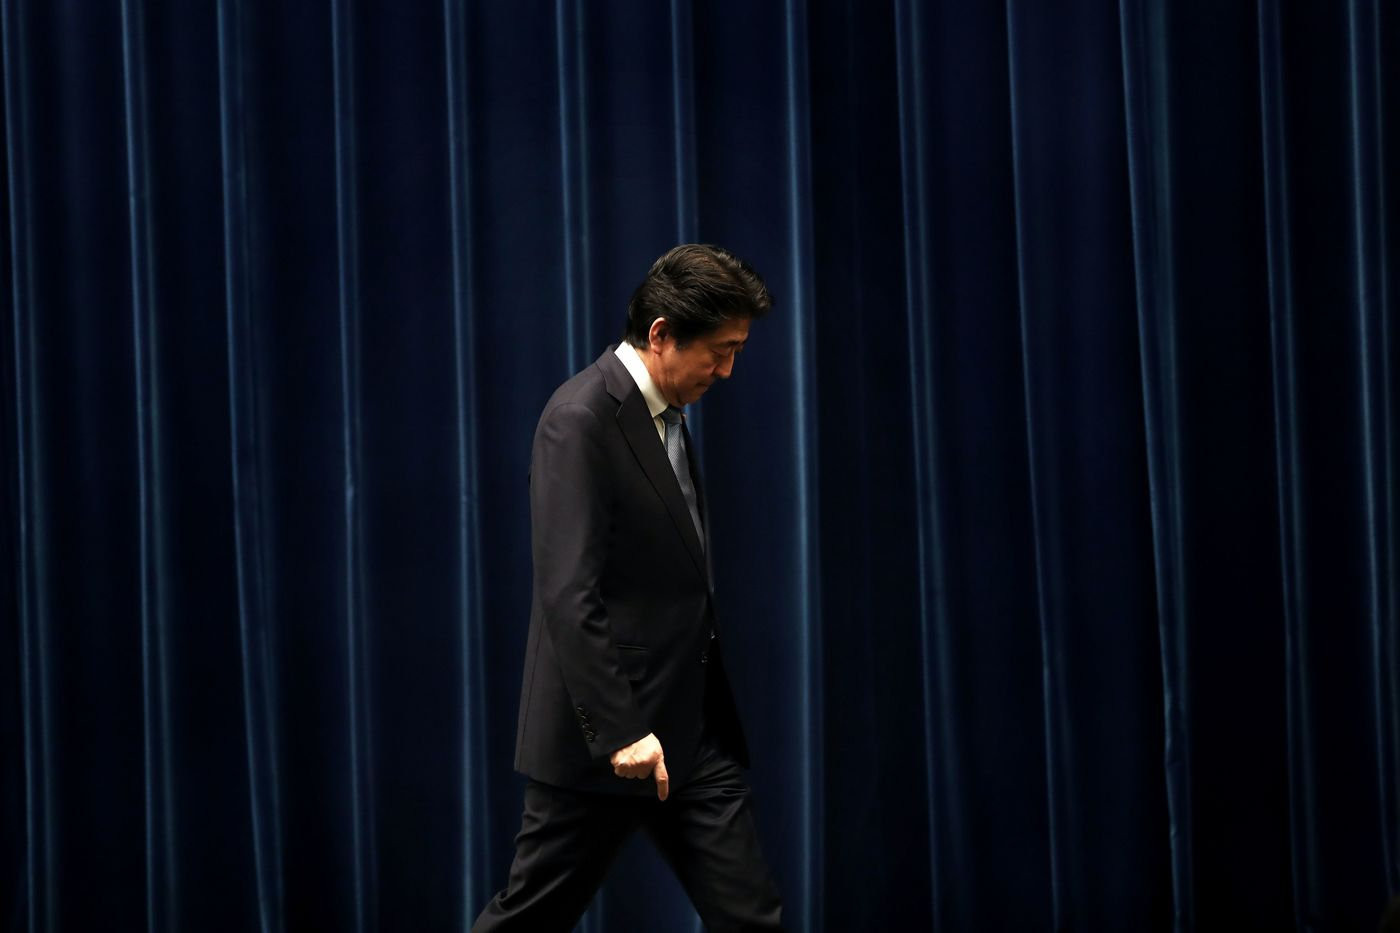 Japan's Prime Minister Shinzo Abe leaves after a press conference in Tokyo on July 20, 2018. / AFP PHOTO / Behrouz MEHRI